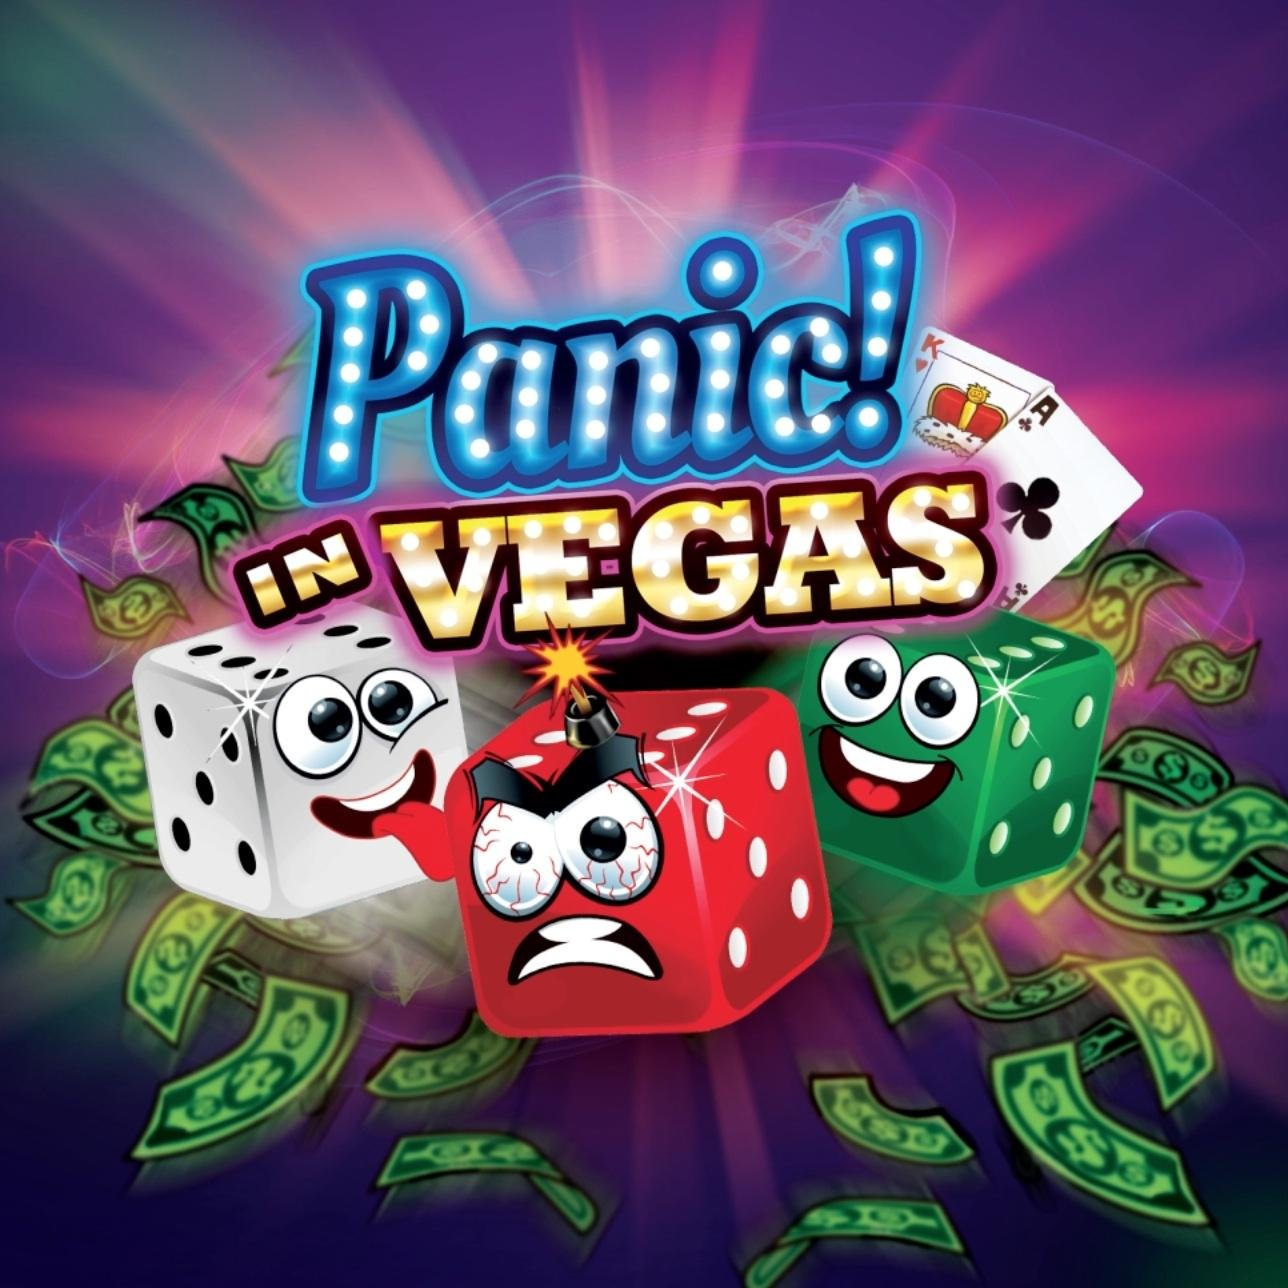 Panic! In Vegas (iOS, Android)